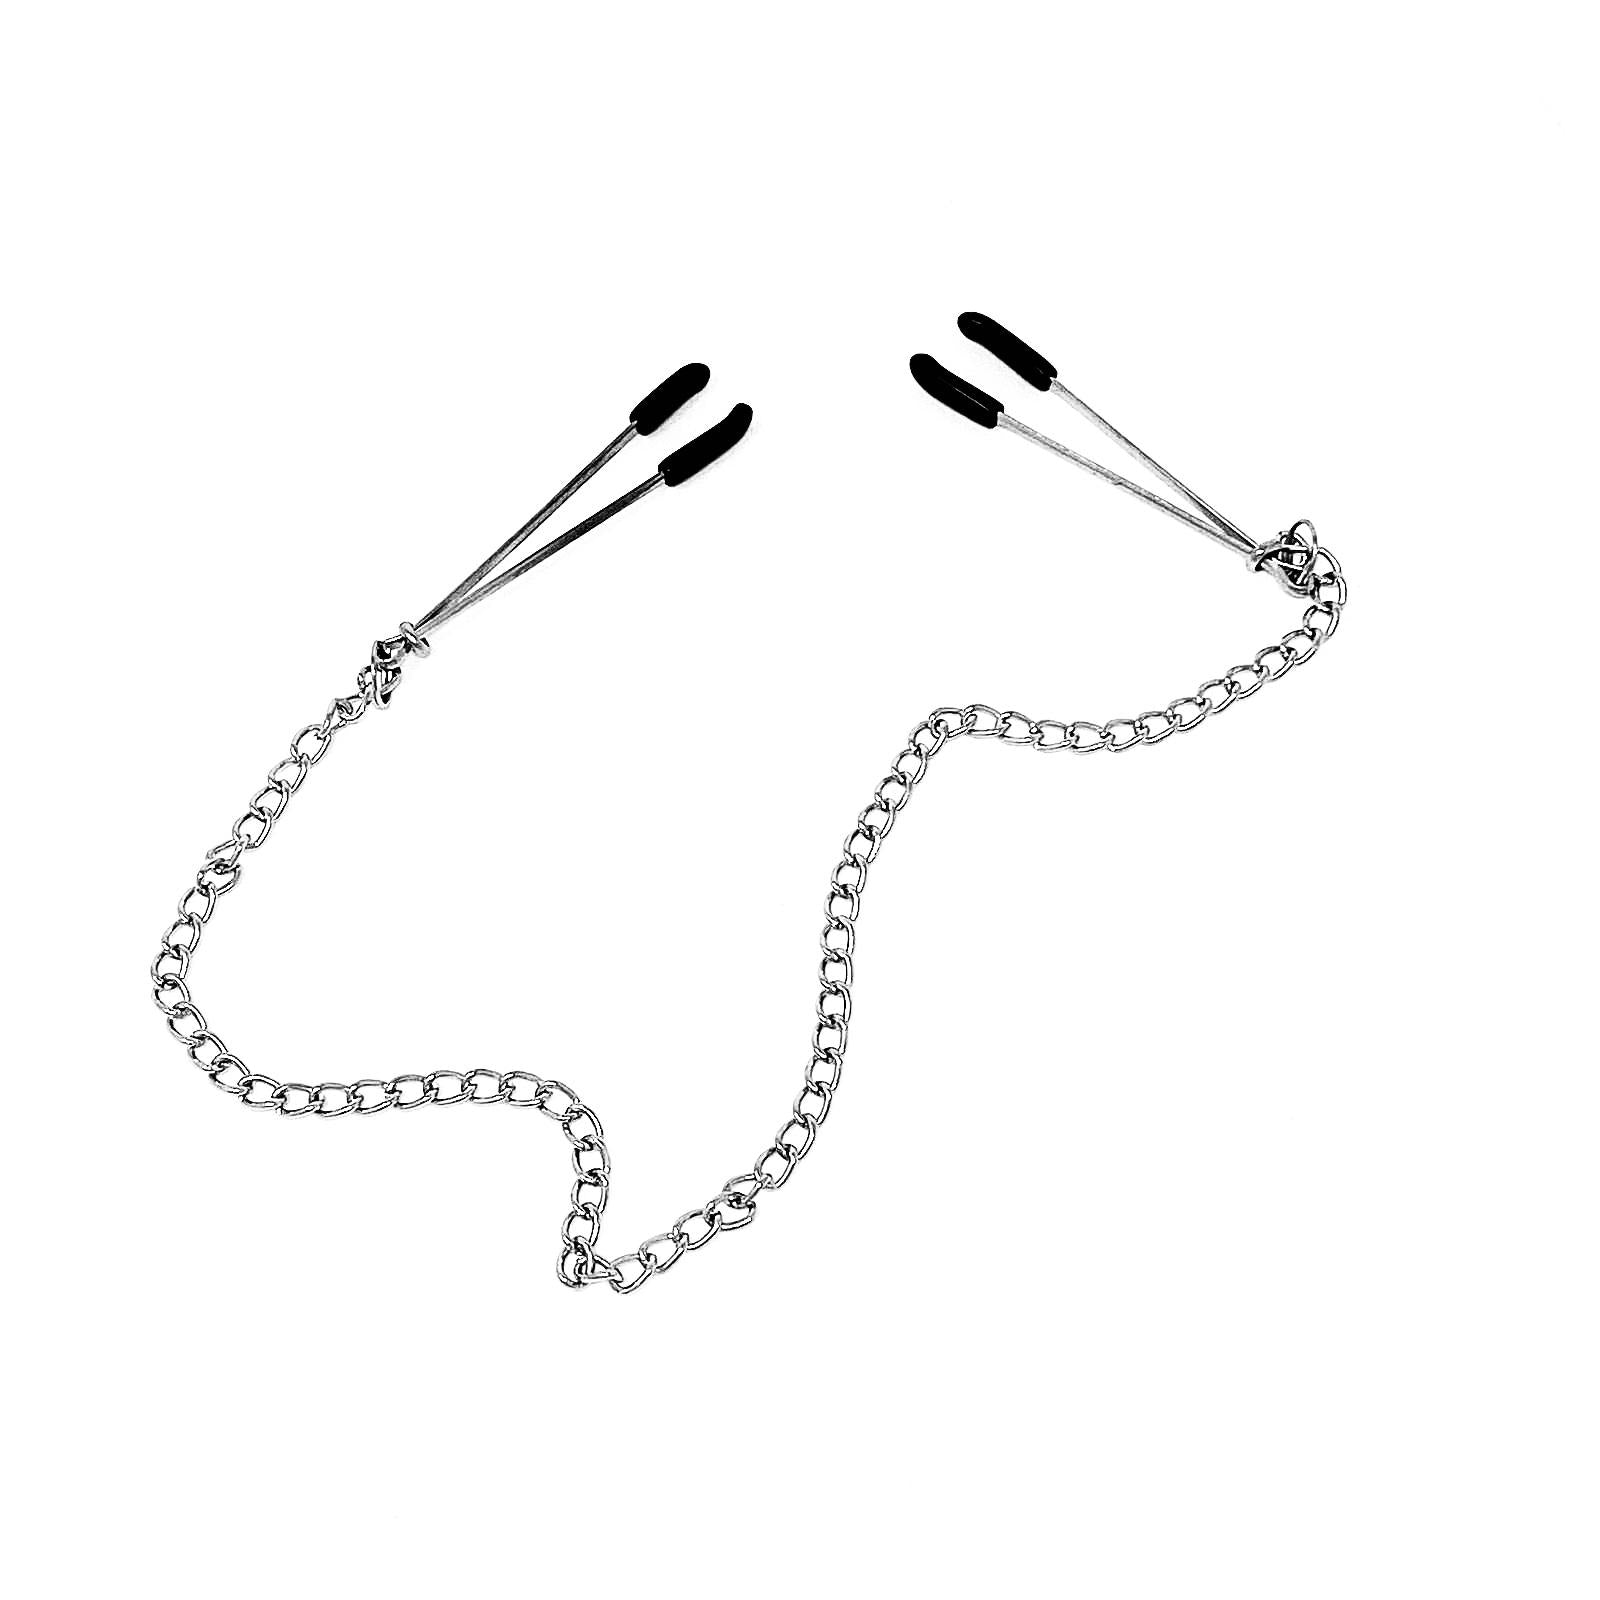 Nipple Clamps w/ Chain Detail